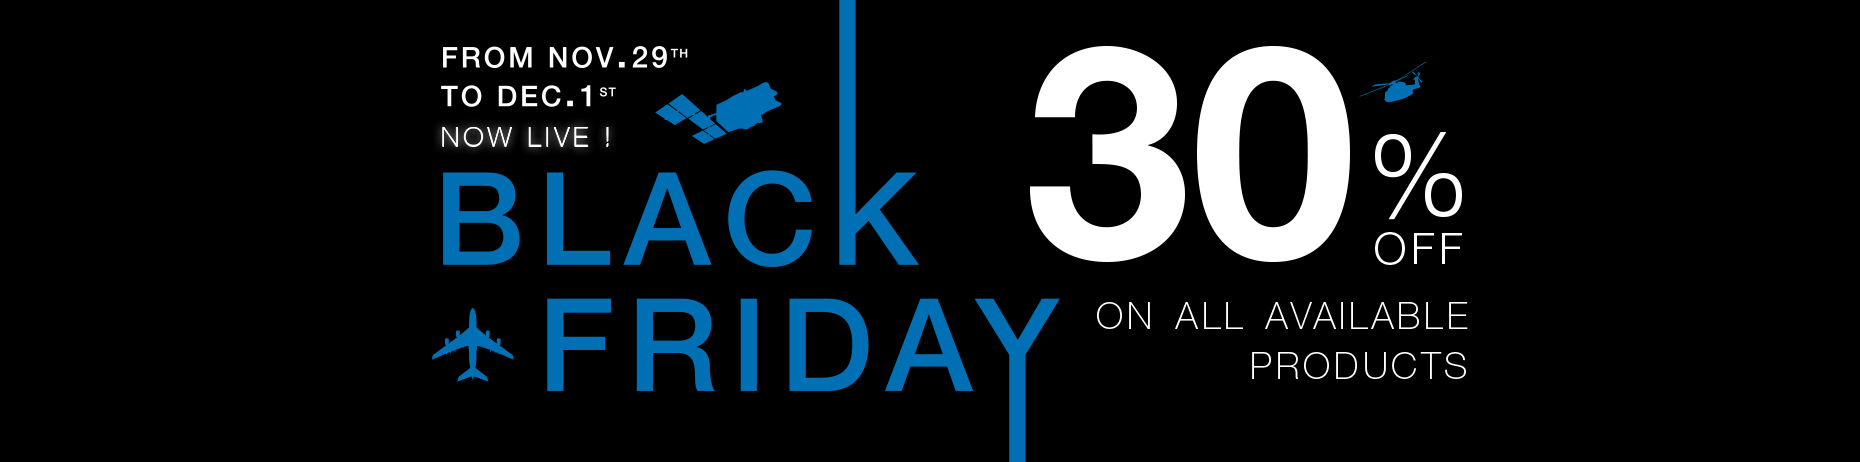 BlackFriday_Slider_NowLive.jpg